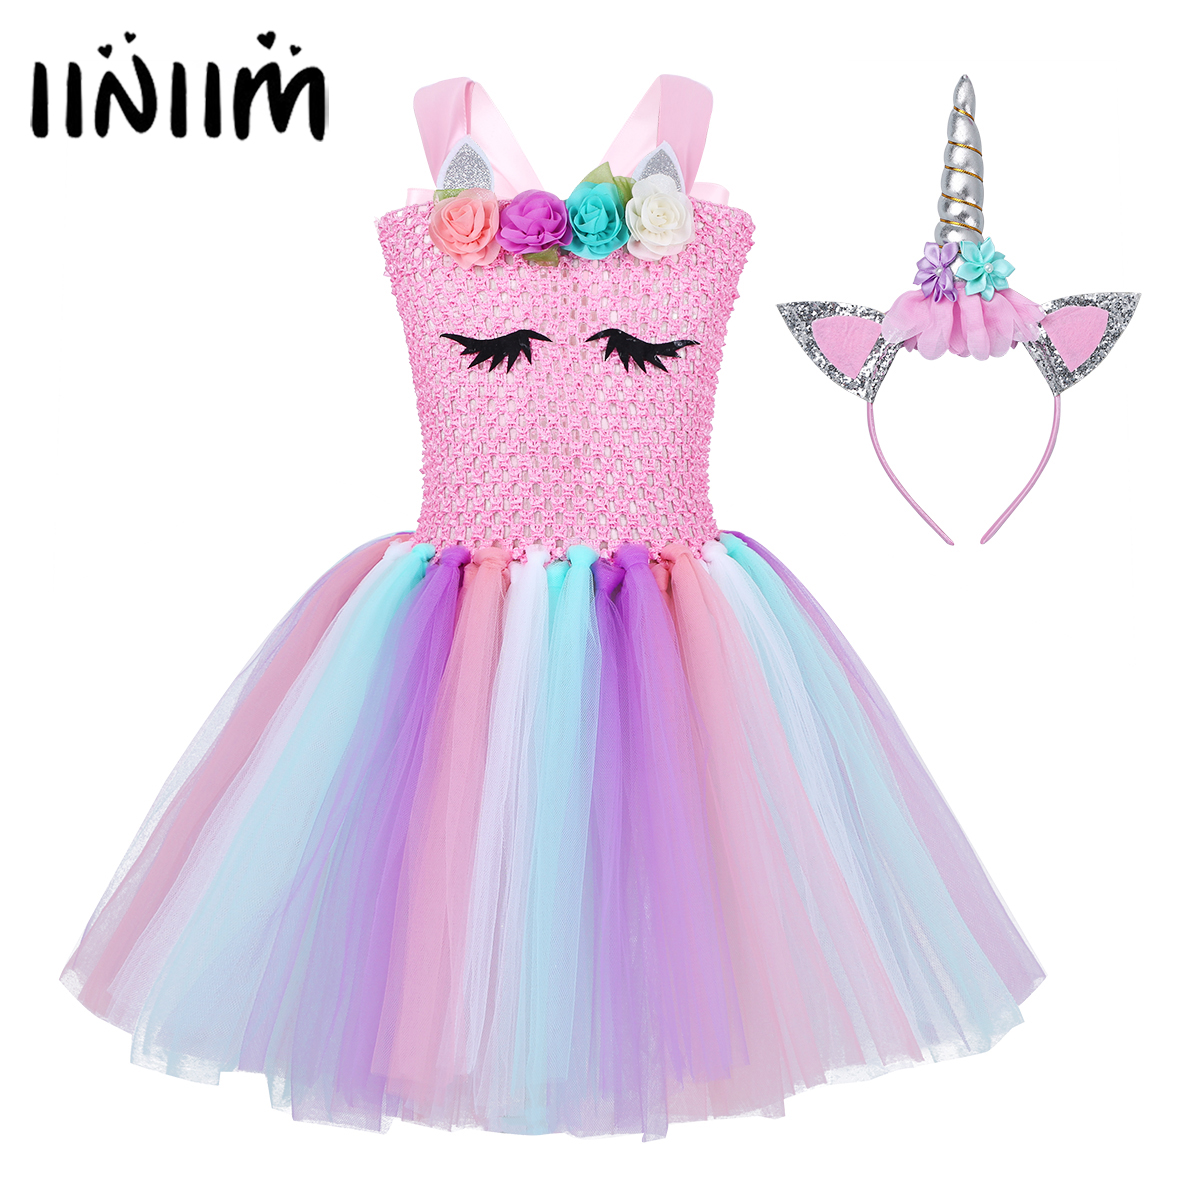 Flowers Girls Princess Cosplay Dress Children's Tutu Halloween Costume for Kids Dress Up Princess Fancy Party Carnival Clothing